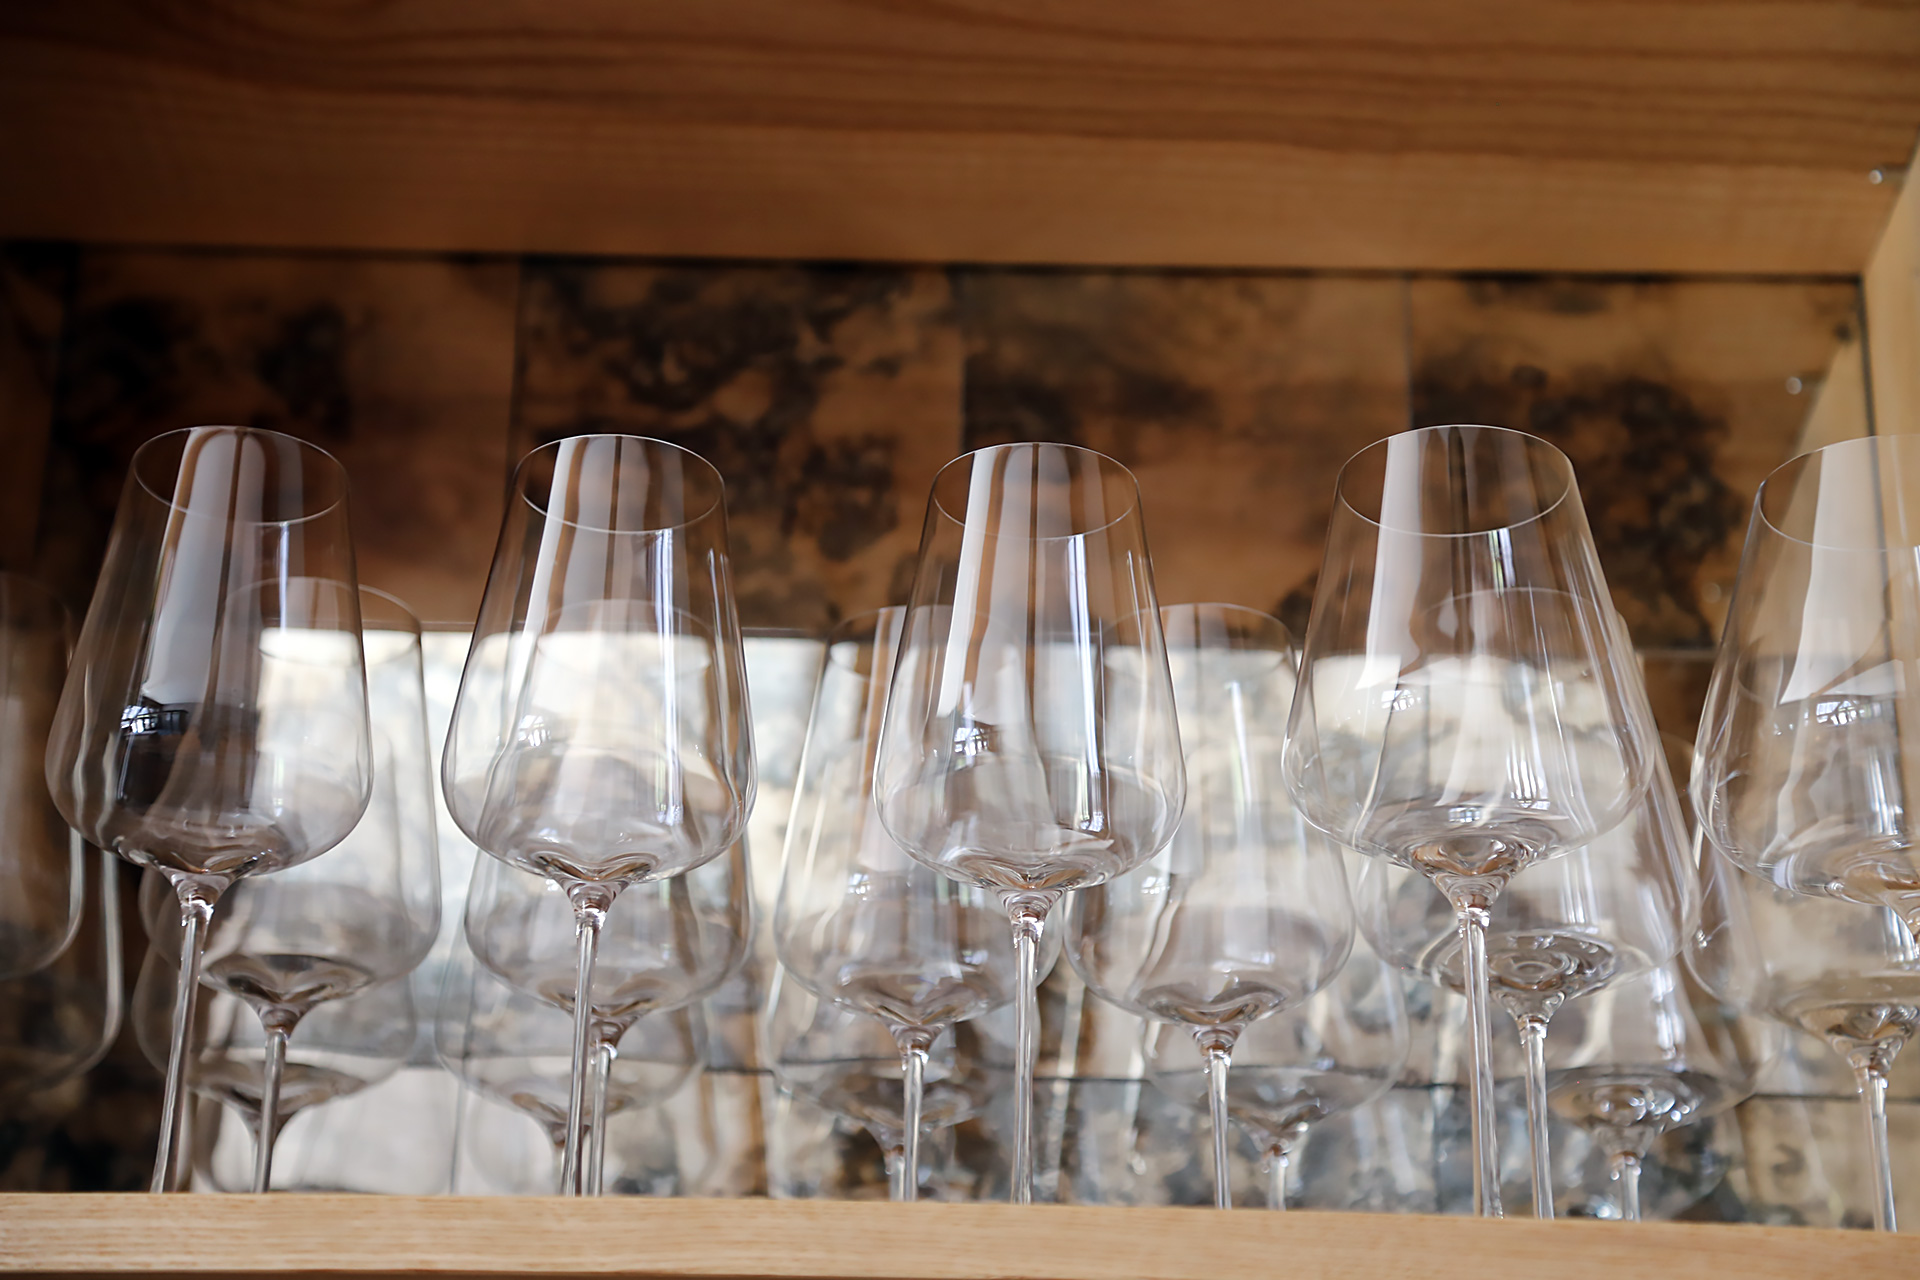 Glassware on display at Birdsong.